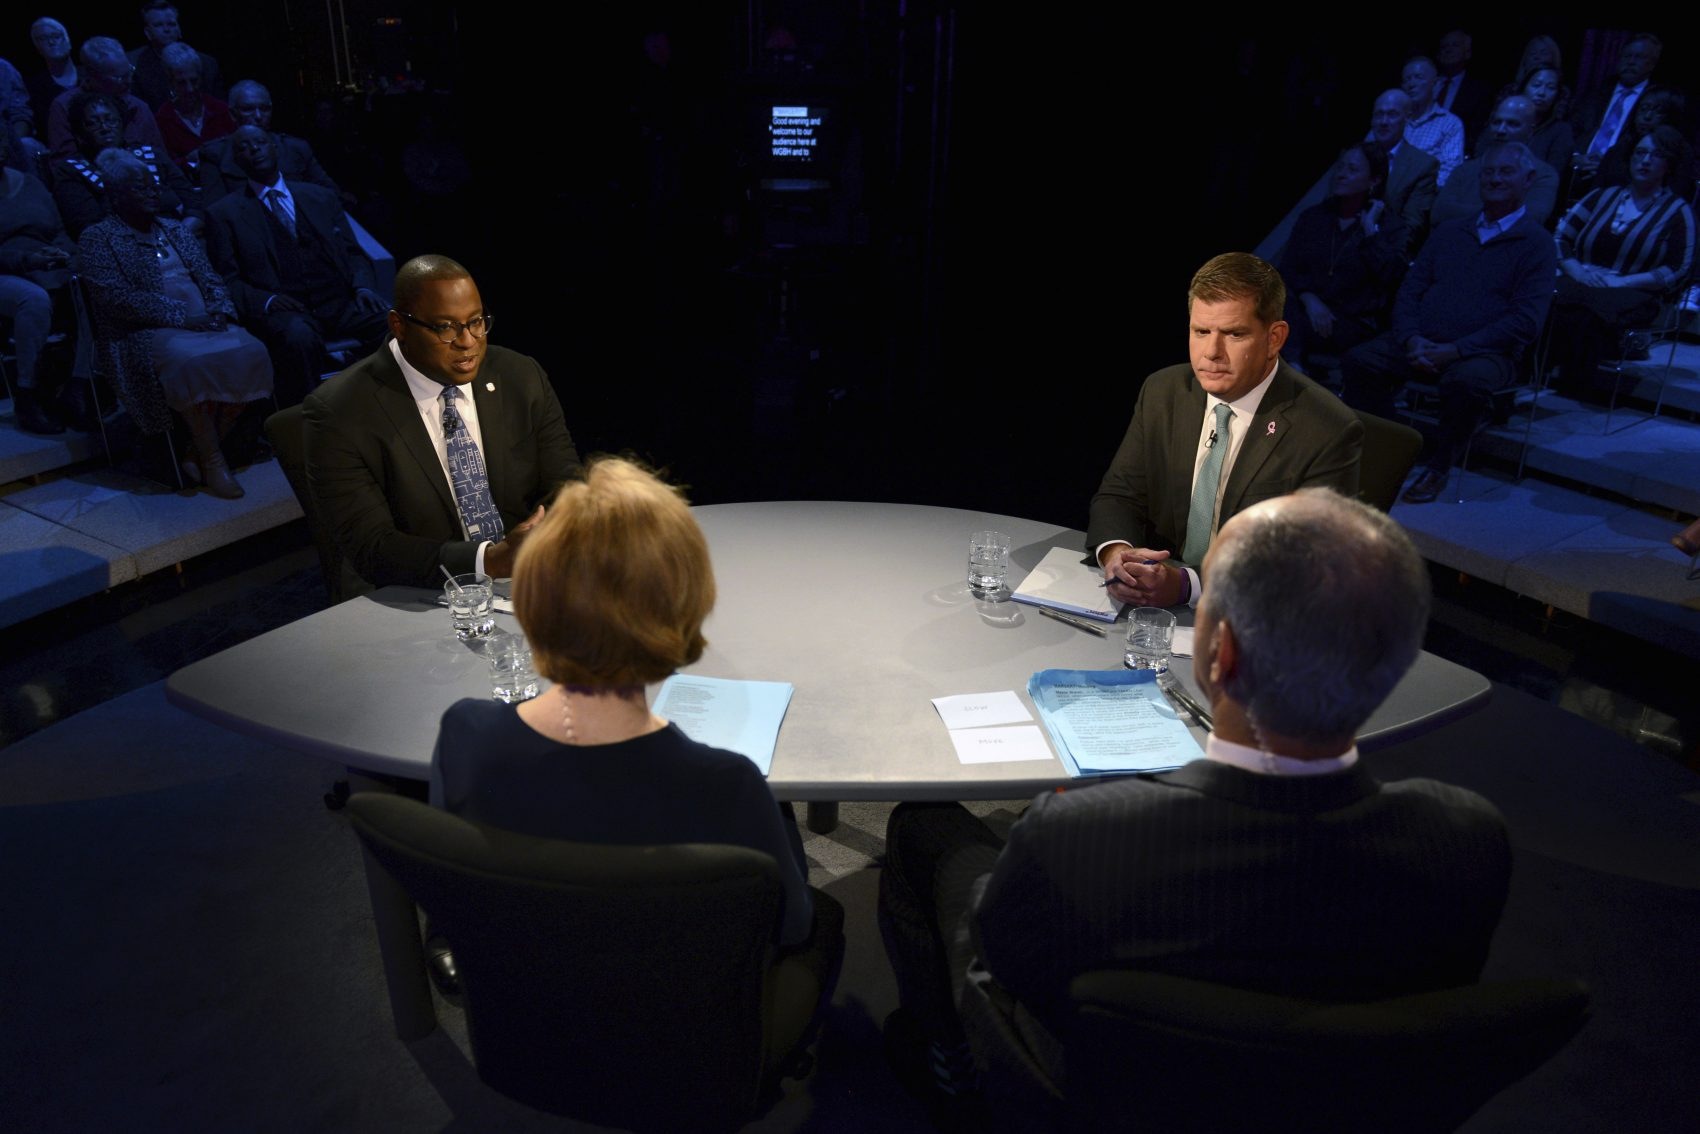 Boston Mayor Marty Walsh, top right, and City Councilor Tito Jackson, top left, participate in a mayoral debate in Boston, Tuesday, Oct. 24, 2017. (Meredith Nierman/WGBH News via AP, Pool)